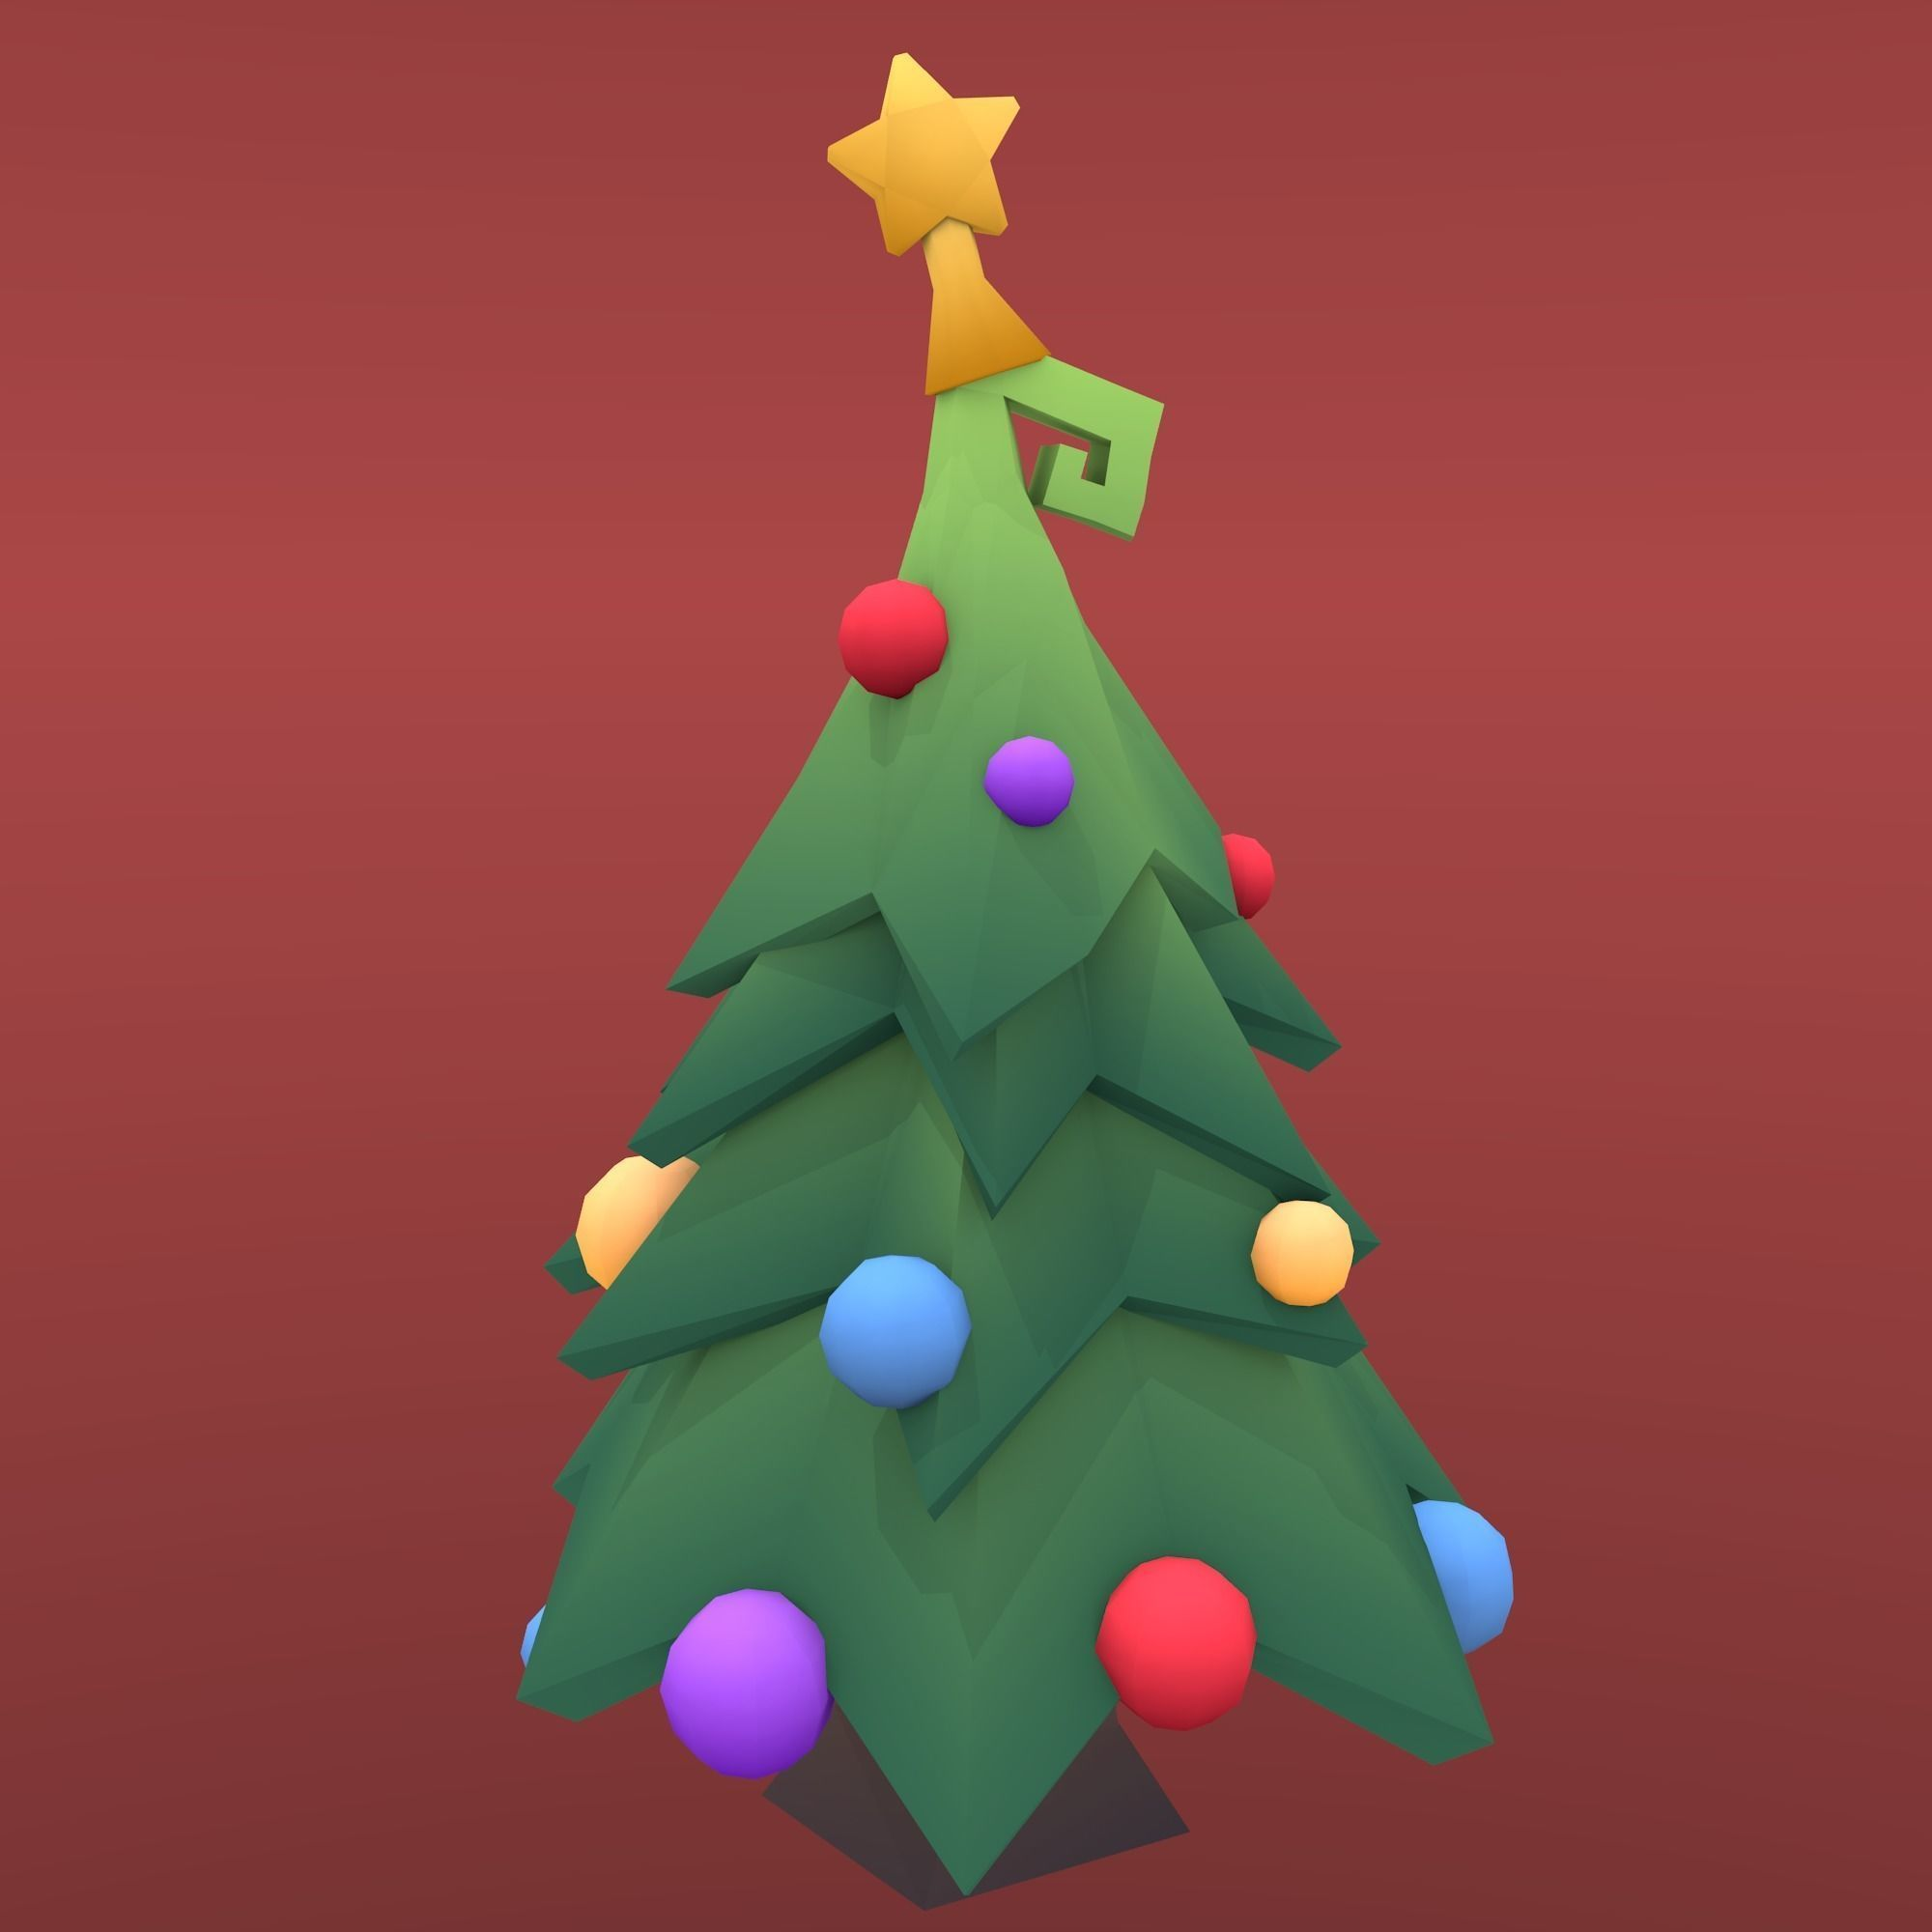 Low Poly Tree Christmas Tree 3d Model In 2020 Christmas Tree 3d Model Low Poly Models Low Poly